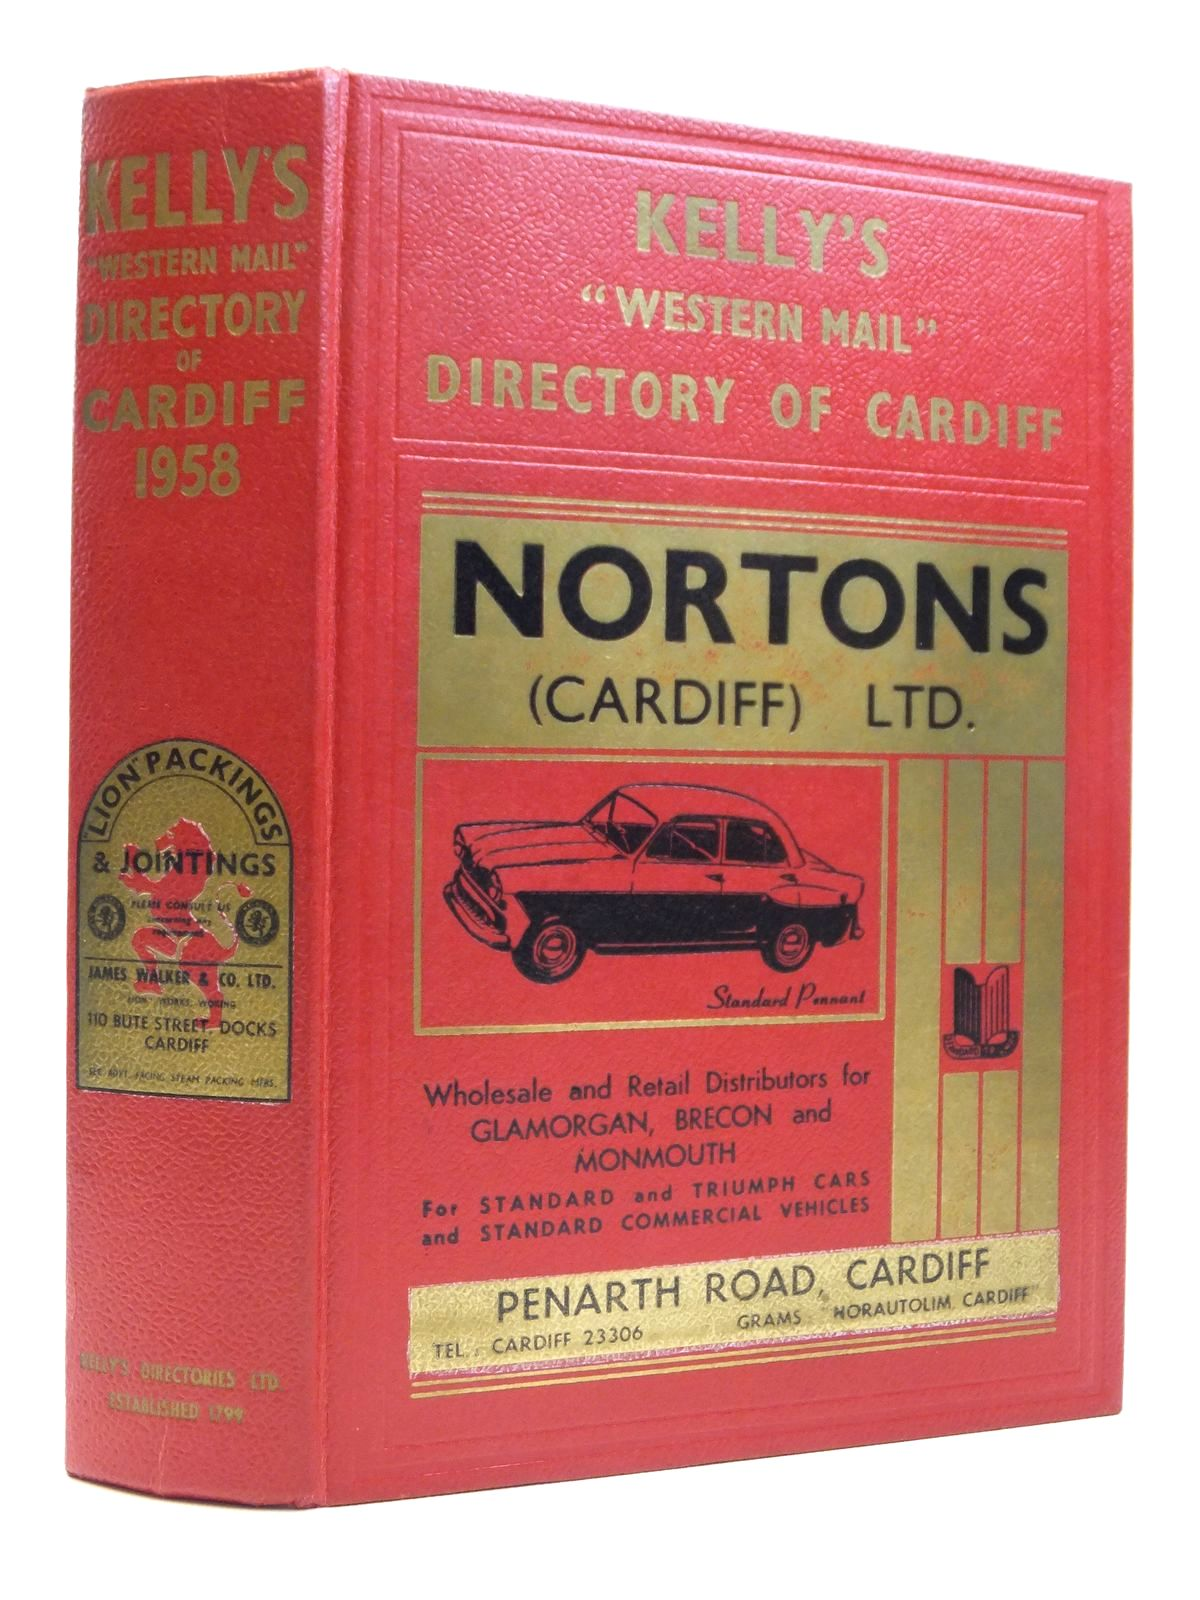 Photo of KELLYS WESTERN MAIL DIRECTORY OF CARDIFF 1958